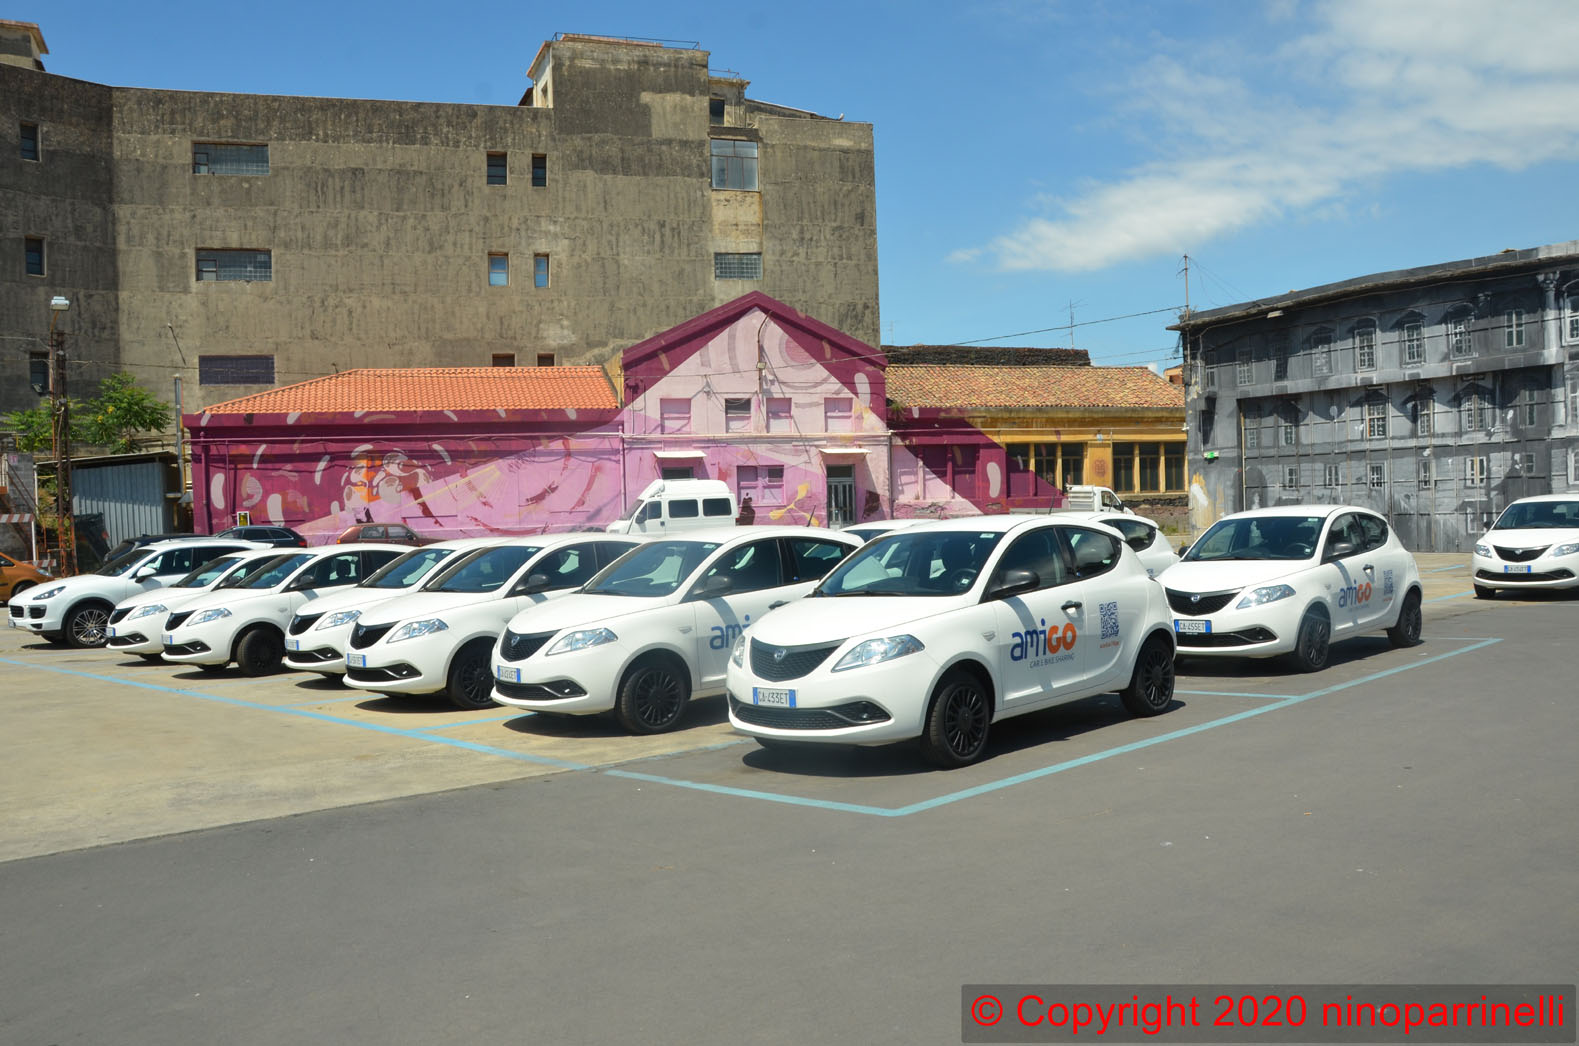 Il parco car sharing Amt